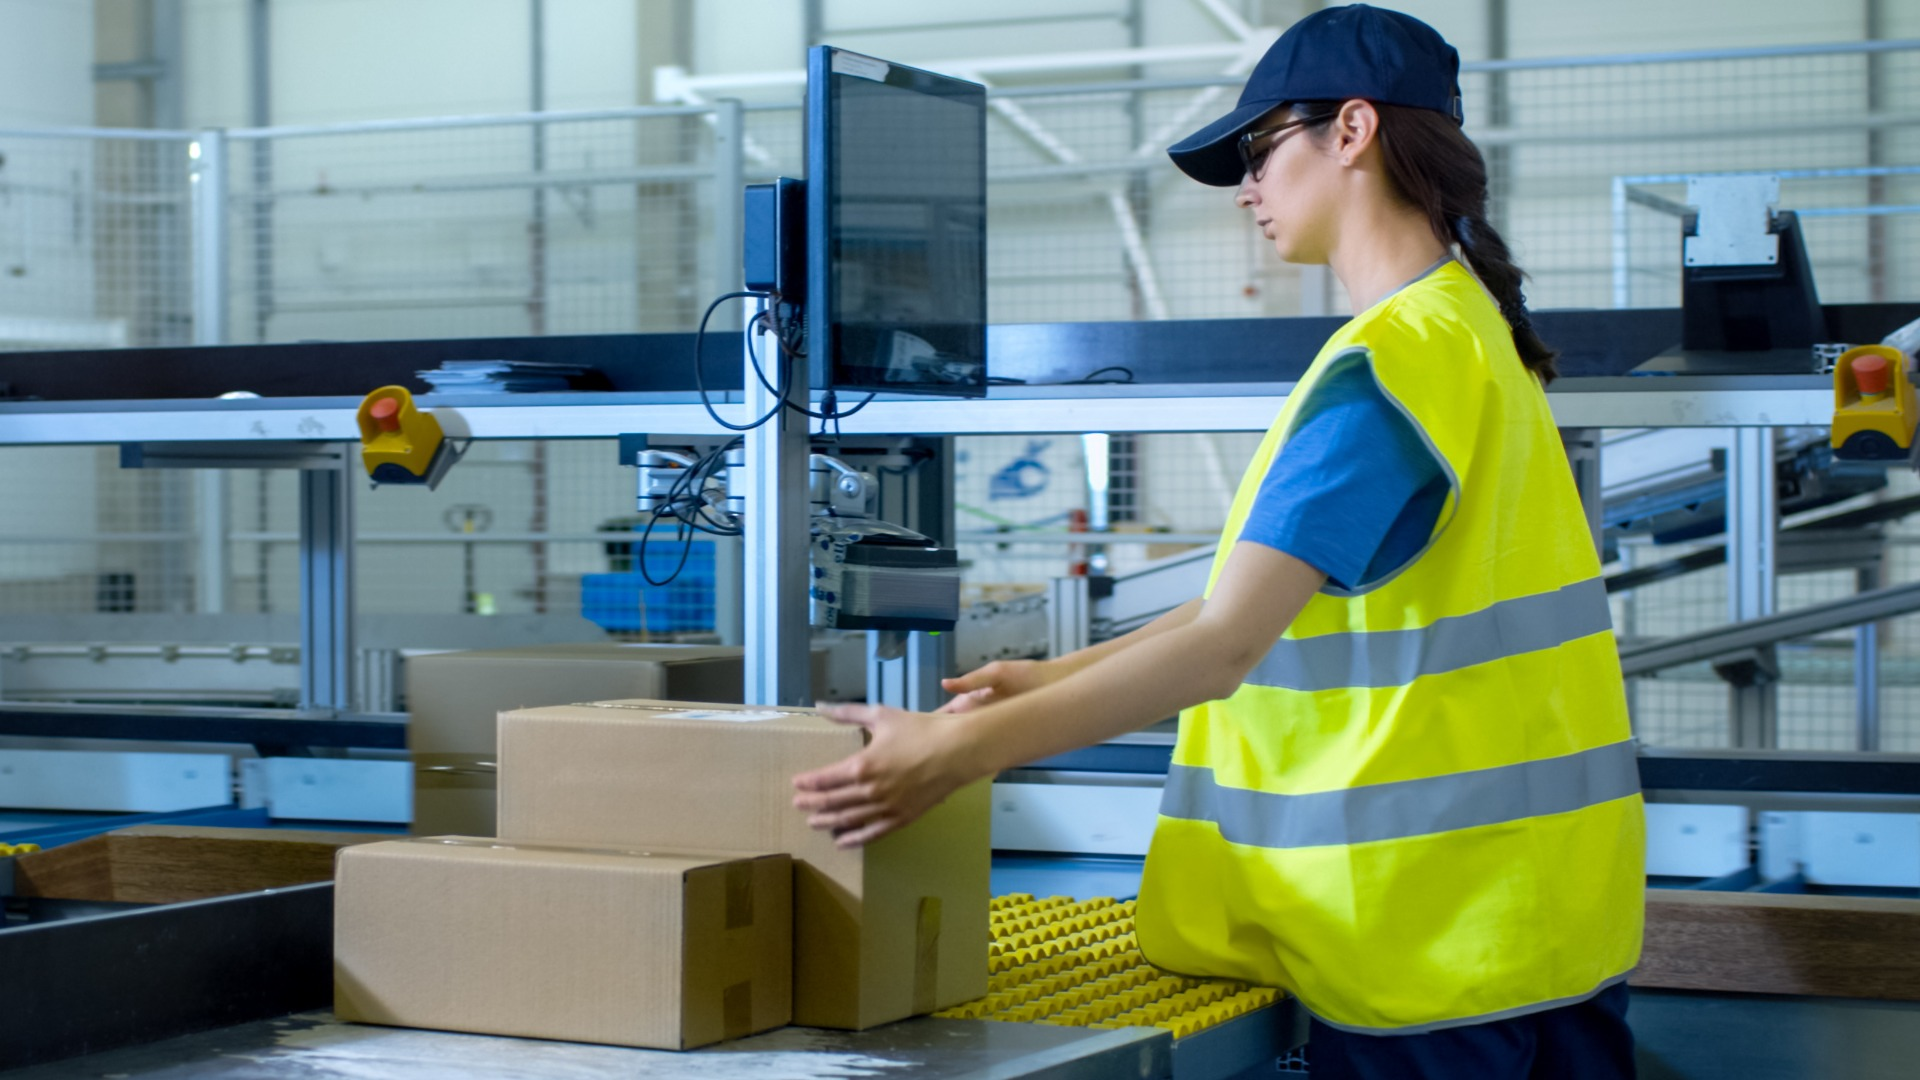 Woman boxing handling boxes in warehouse